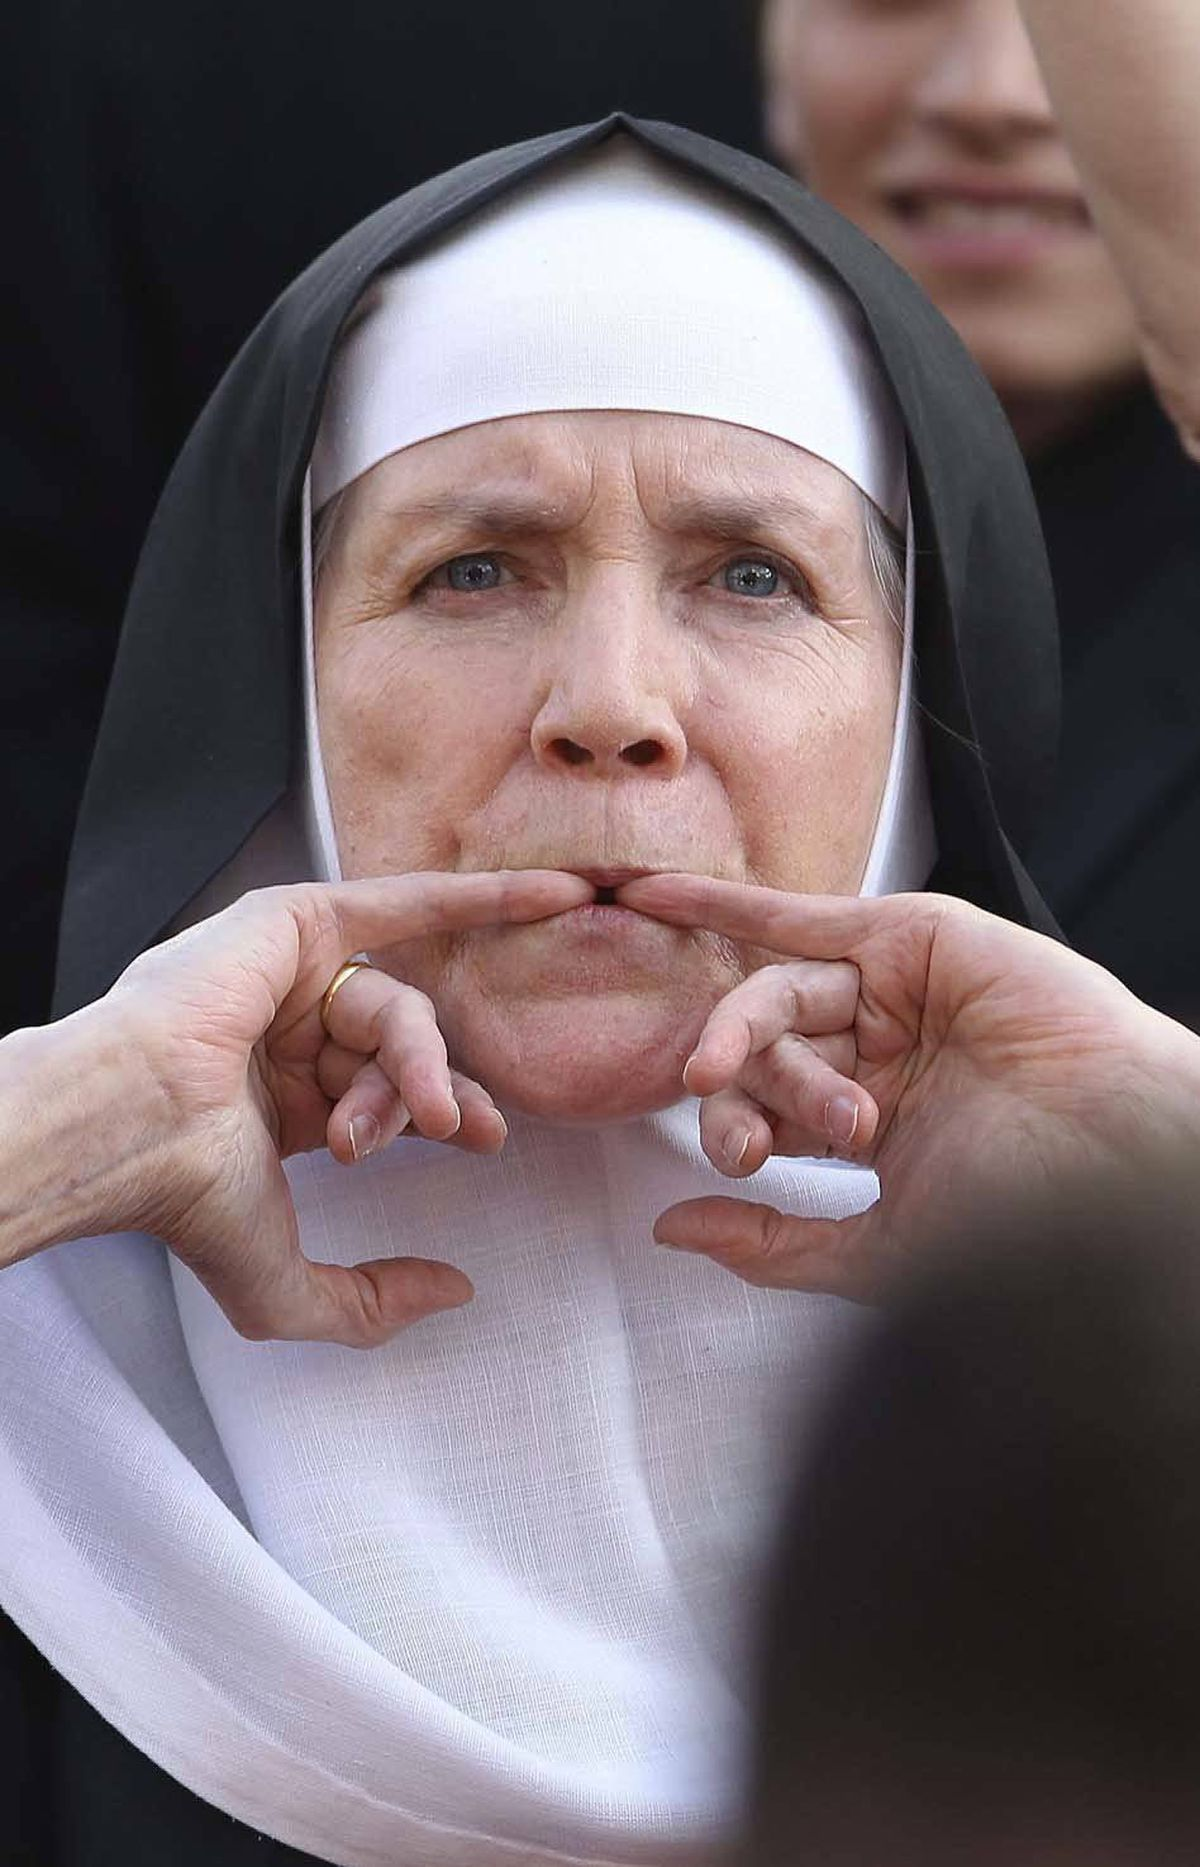 A whistling nun appears on the Oscars red carpet Sunday. That has got to be the weirdest thing on the red carpet, right? There's not going to be something more difficult to explain than that.